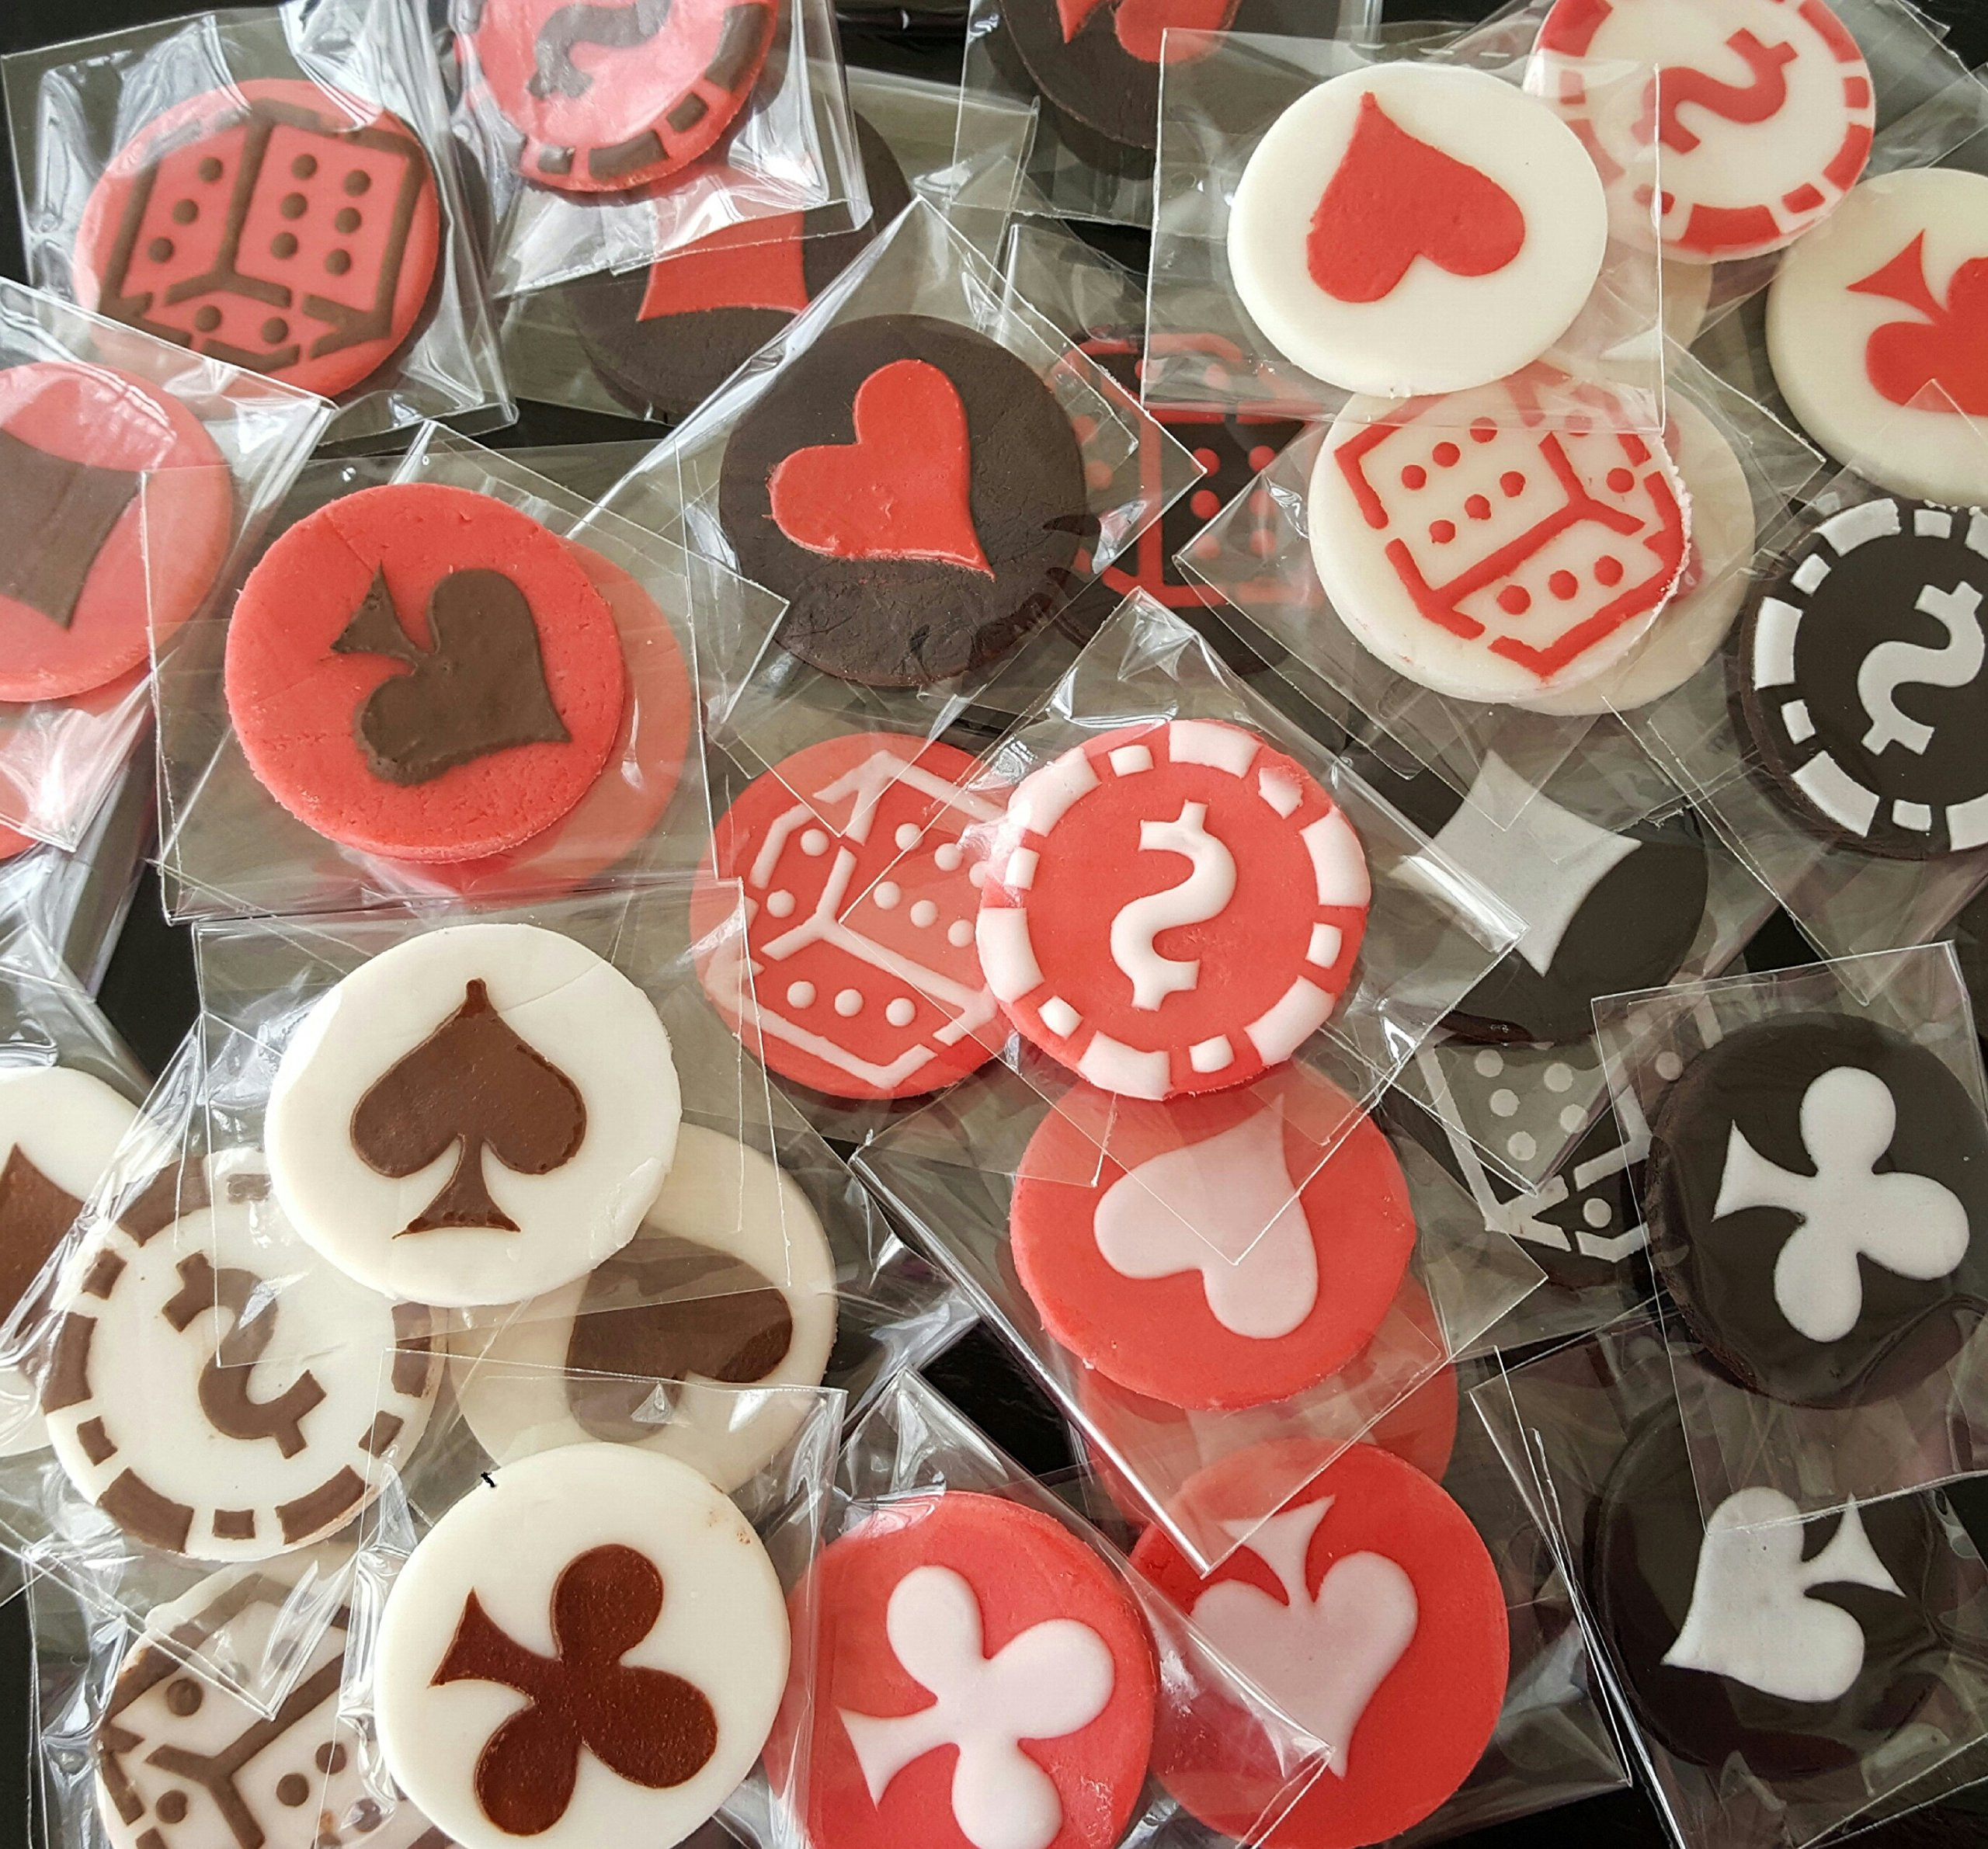 Poker 50 PC Edible Chocolate Fondant Casino Poker Topper - Cupcake, Cake, Cookie, Chocolate, Coffee, Tea, or any Dessert - Shown as the First Photo